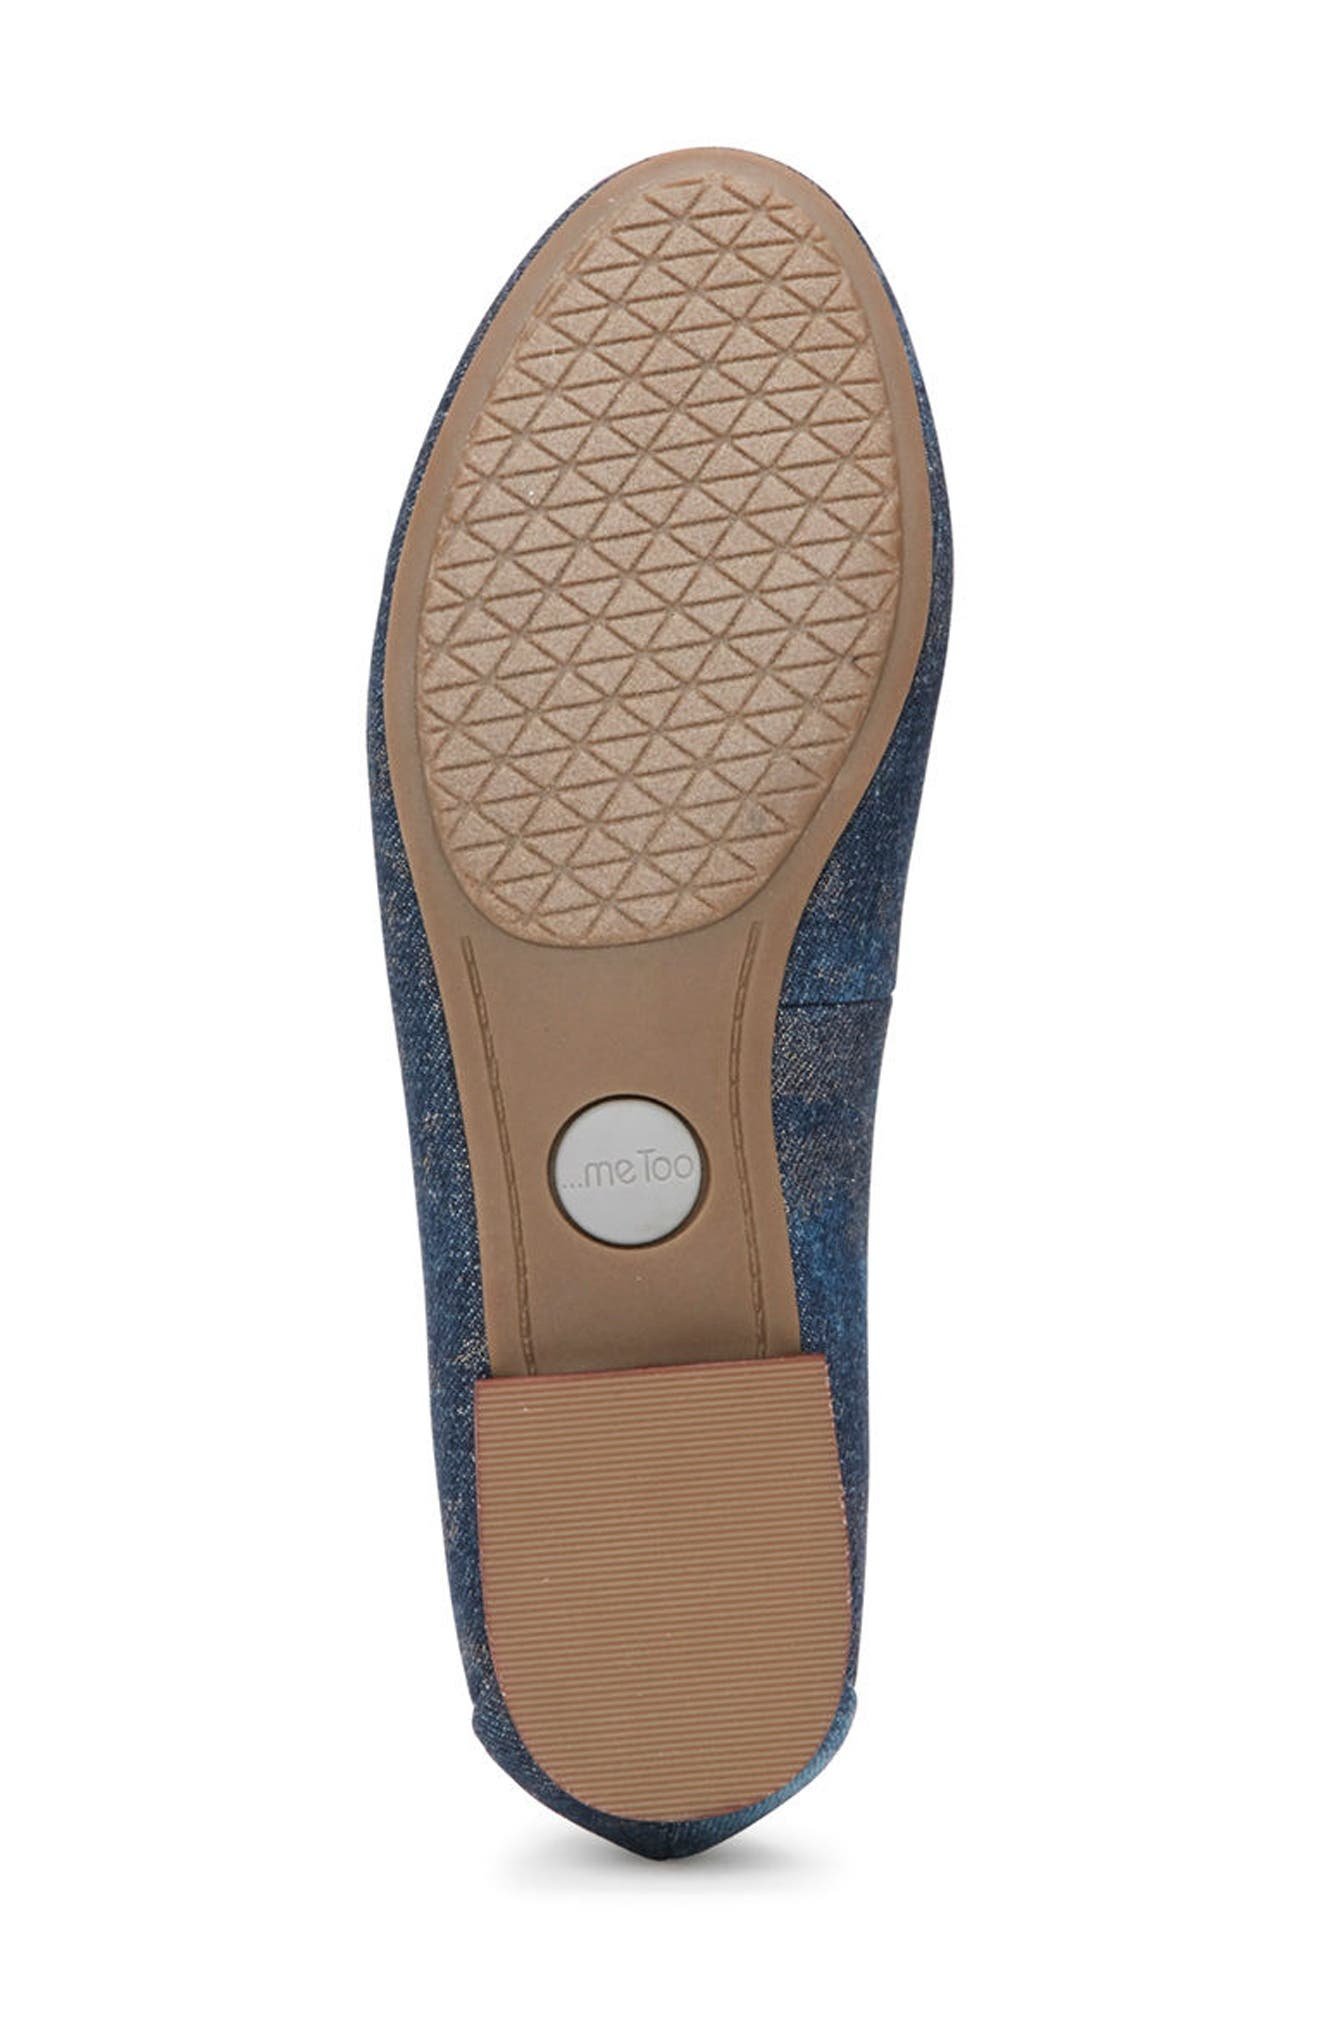 Sapphire Crystal Embellished Flat,                             Alternate thumbnail 6, color,                             Blue Champagne Denim Fabric